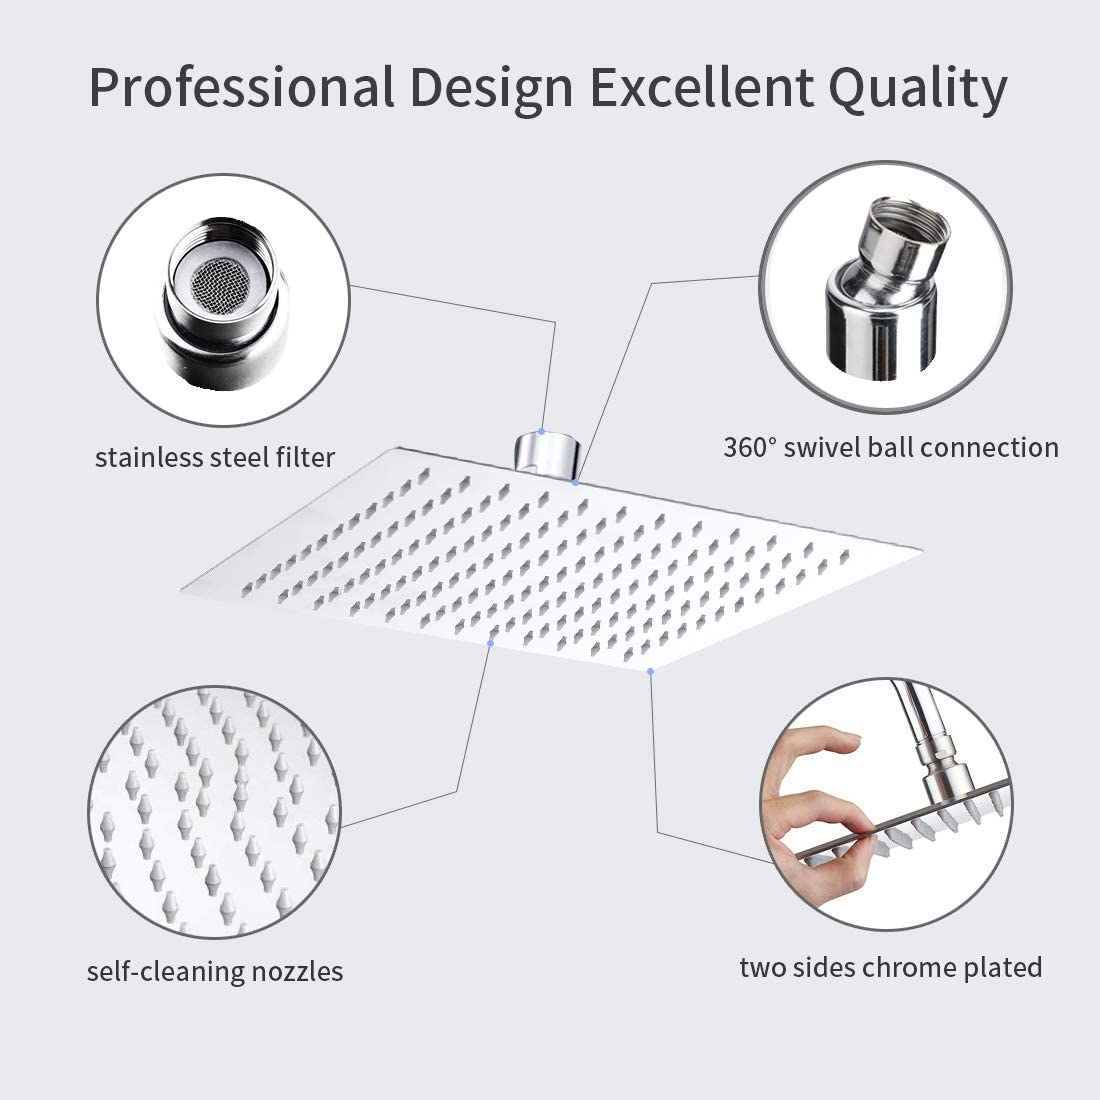 Adjustable Metal Swivel Ball Joint Self-Cleaning Silicon Nozzle Stainless Steel Modern Design Shower head for Shower Room 8 Inch Shower Head with High Pressure,High Flow Rainfall Shower Head Square